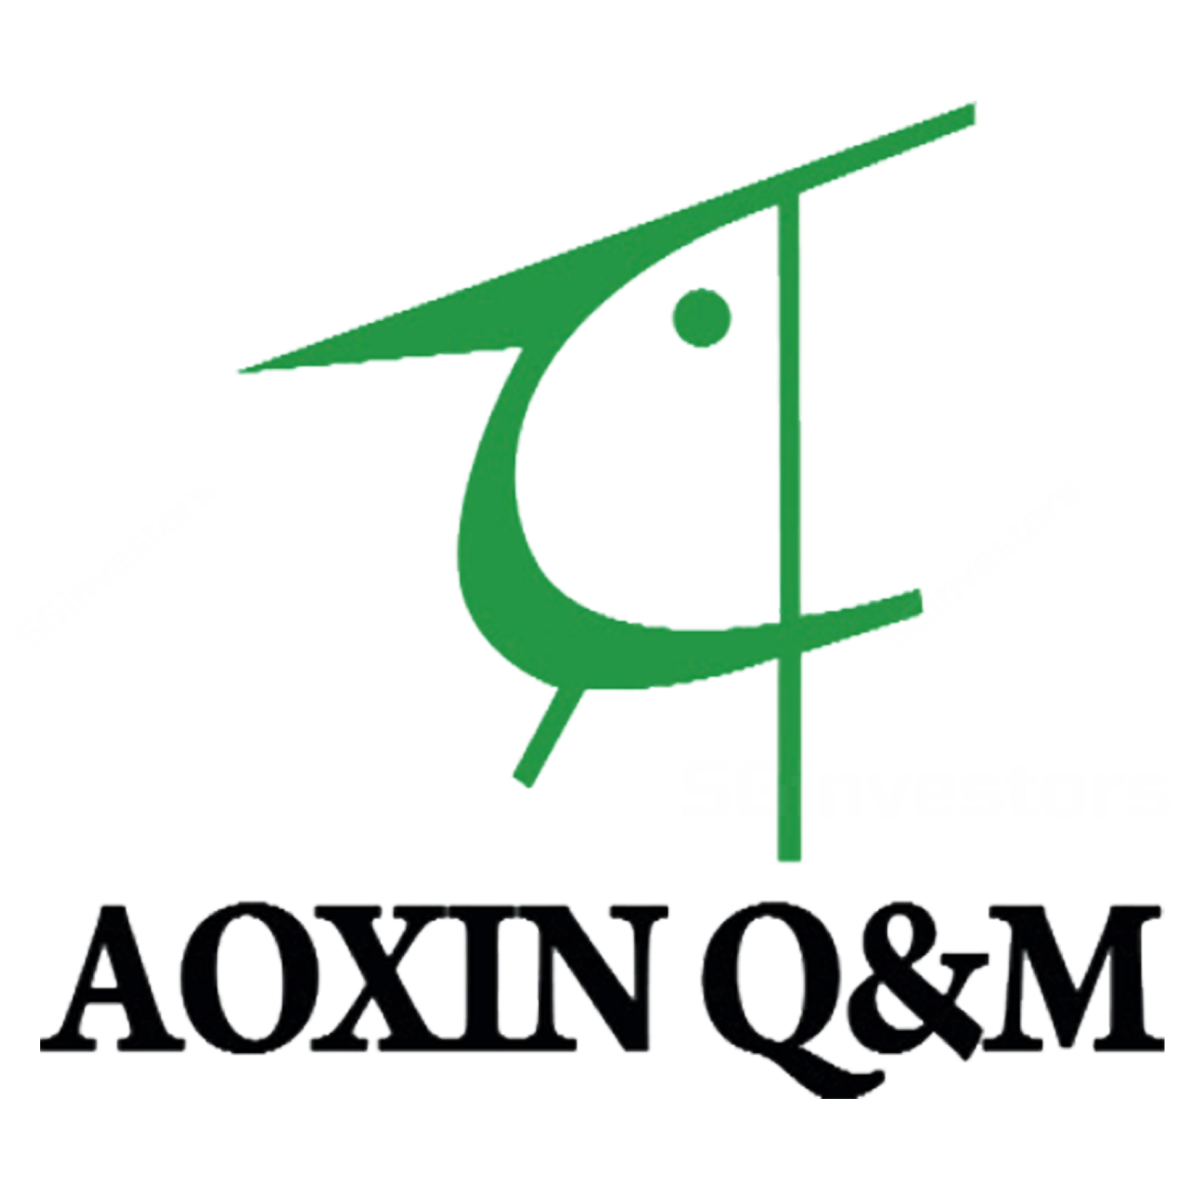 Aoxin Q&M Dental Group Limited - Phillip Securities 2018-06-01: Witnessing Greatness In The Making